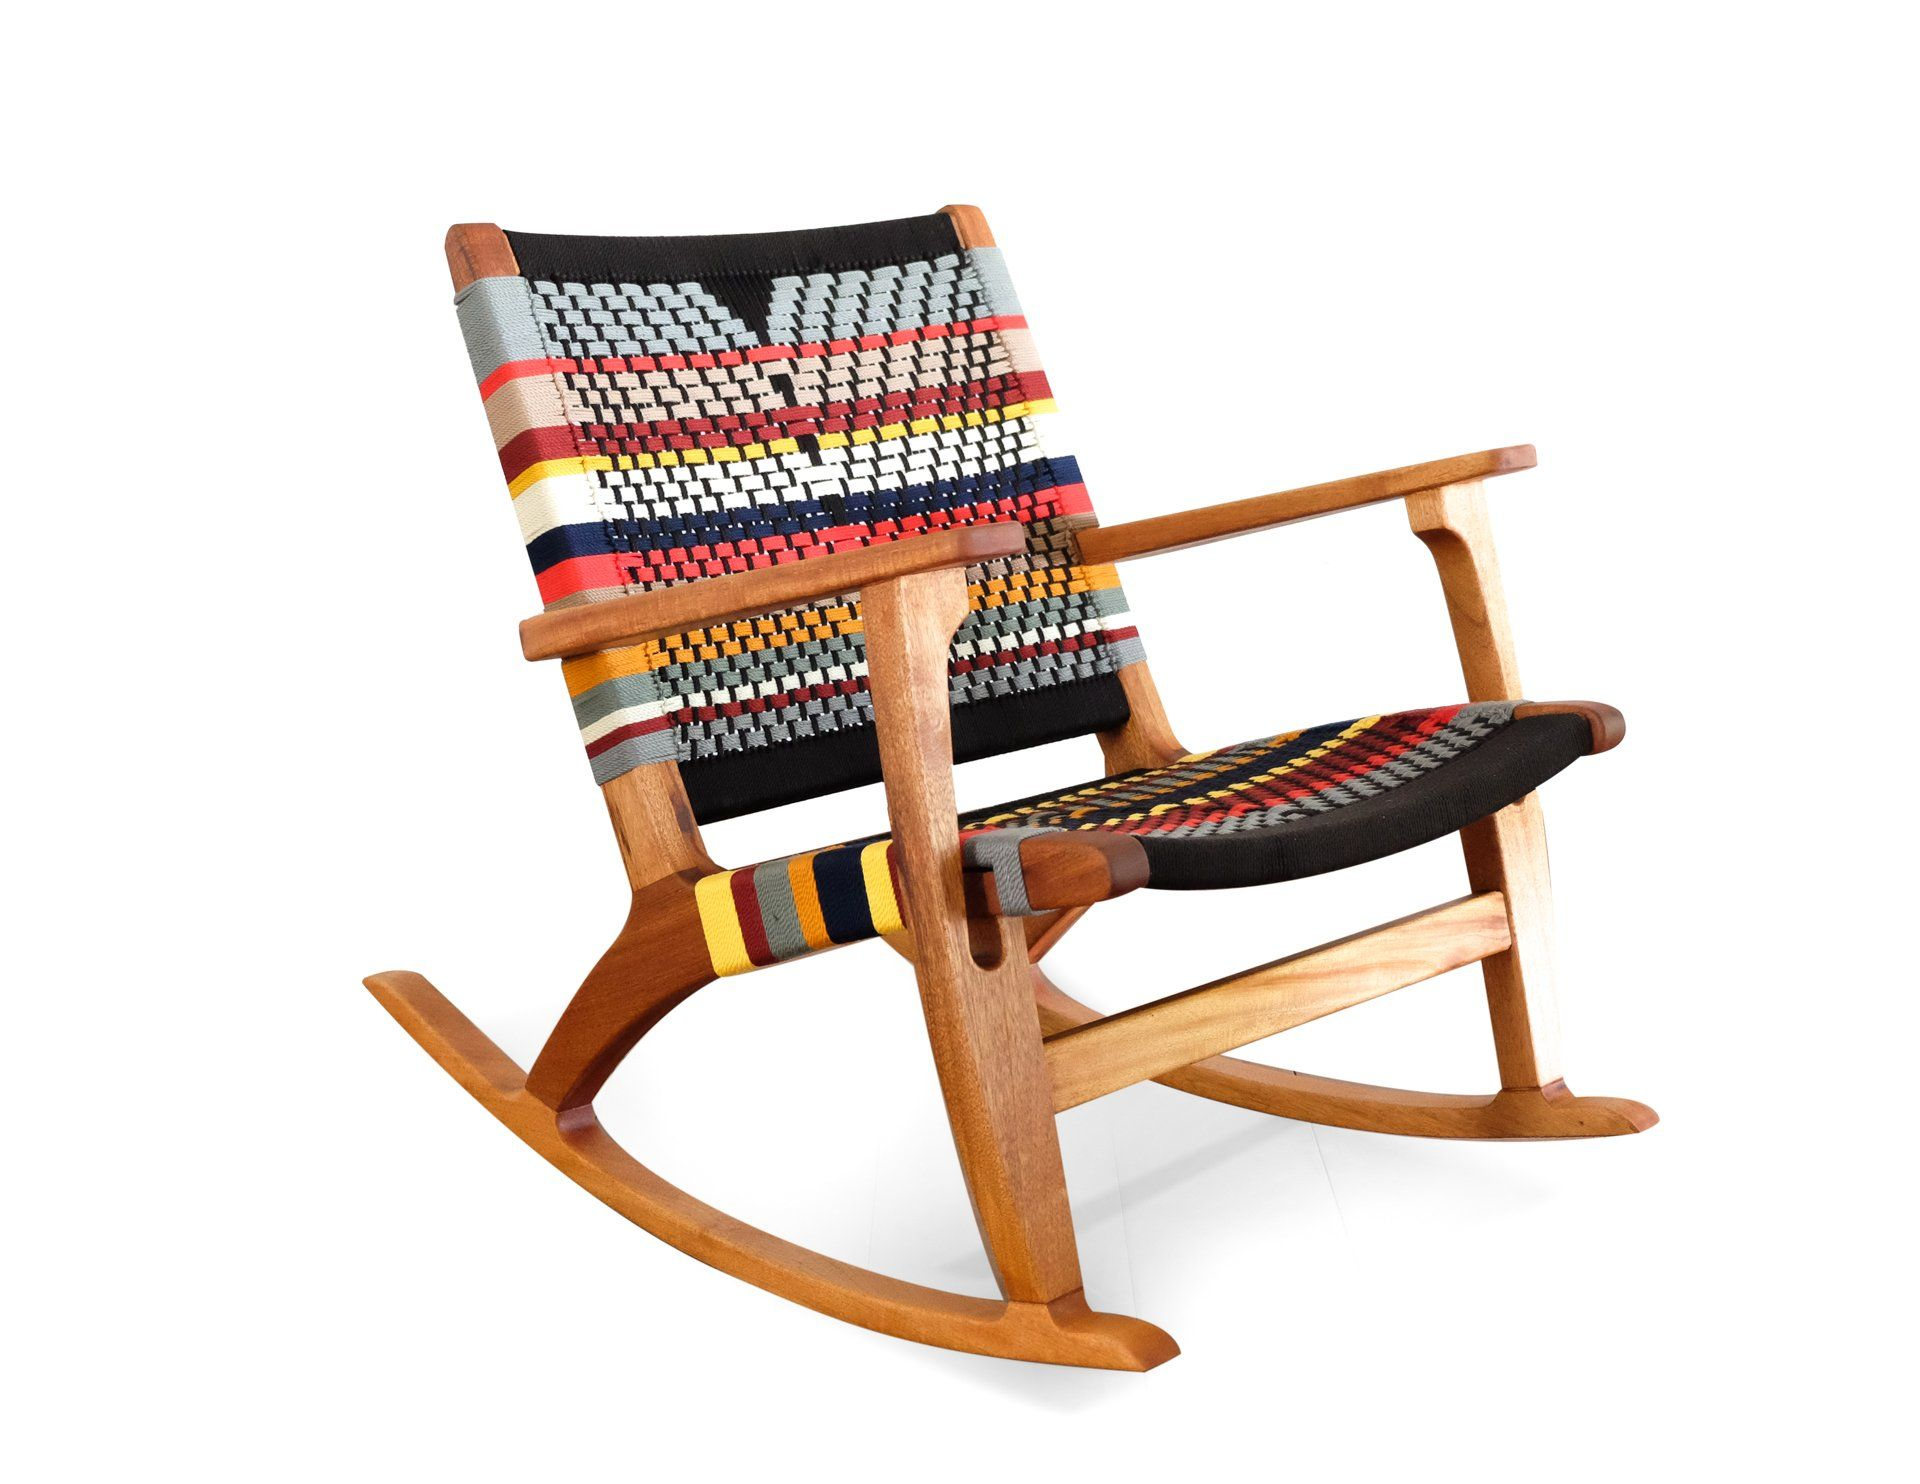 Groovy Masaya Rocking Chair San Geronimo Outside In In 2019 Creativecarmelina Interior Chair Design Creativecarmelinacom